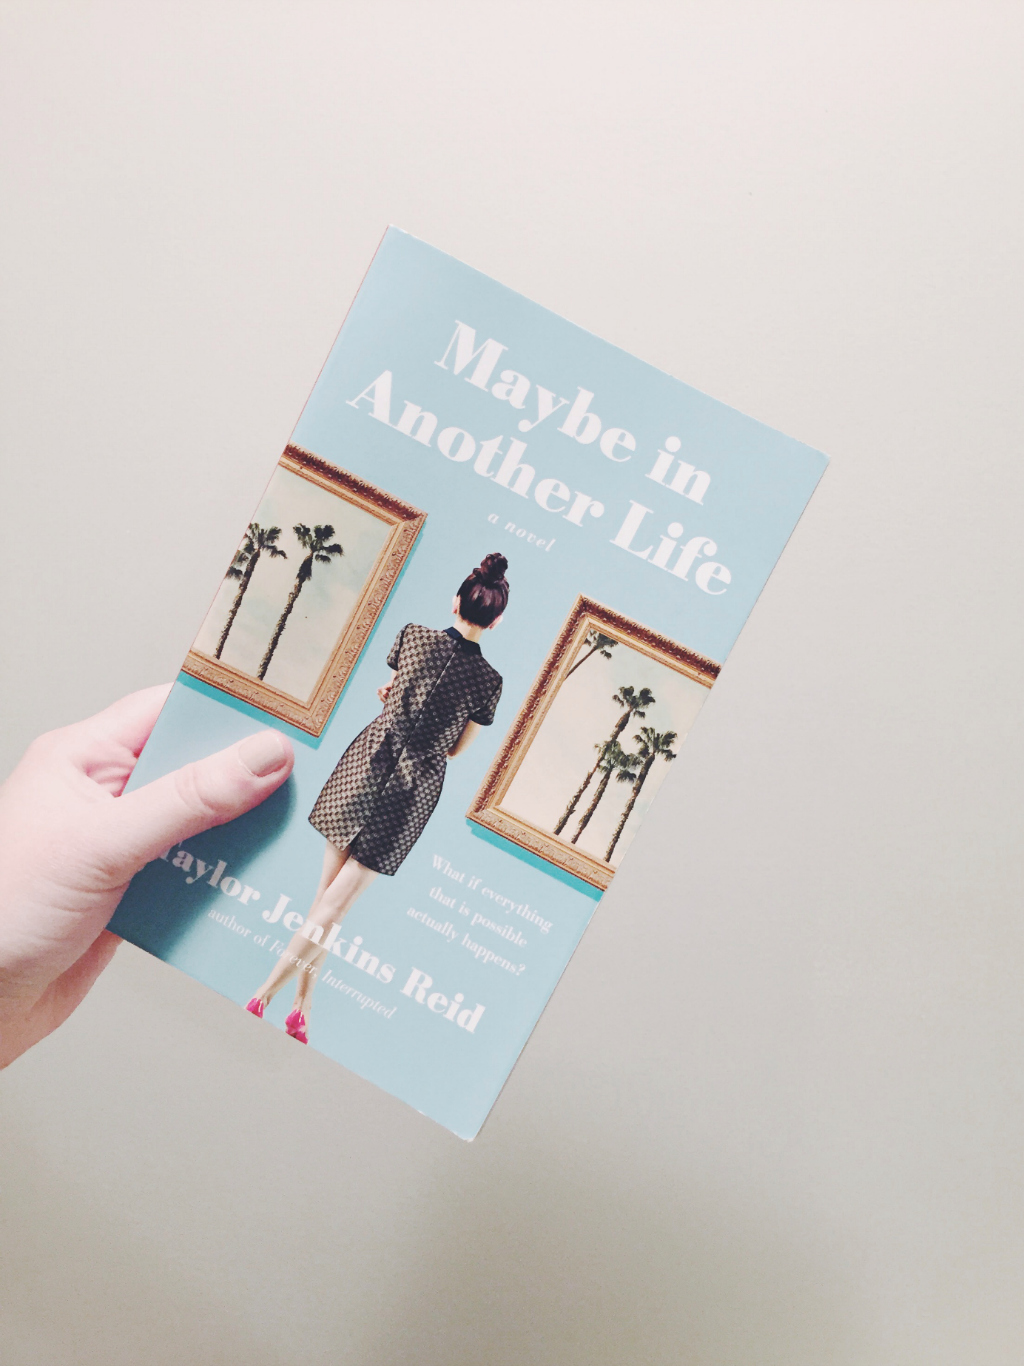 maybeinanotherlife-bookreview